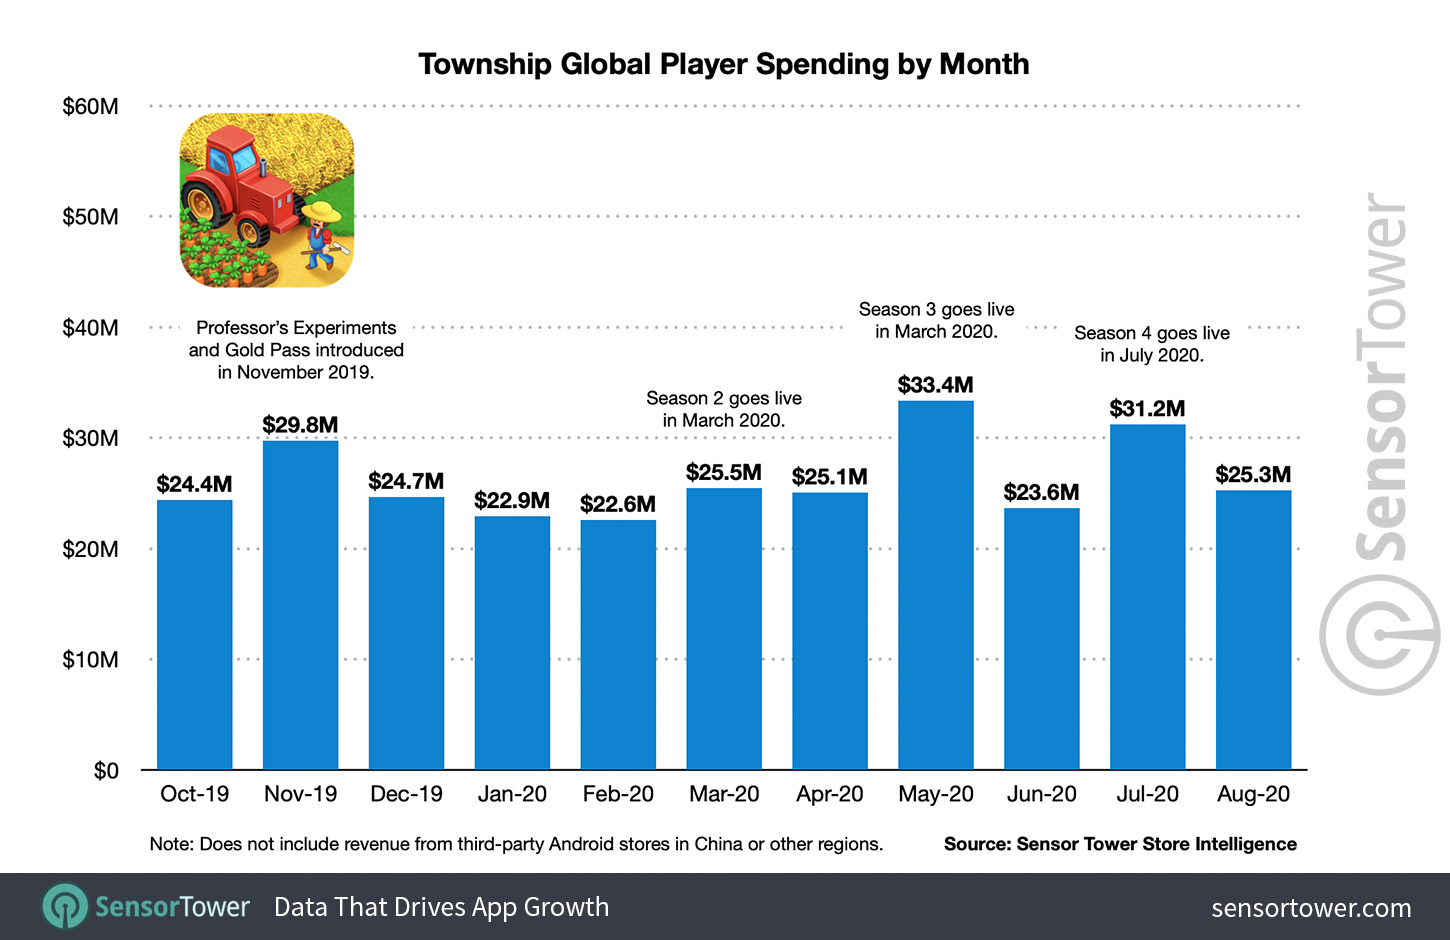 Township Global Player Spending by Month